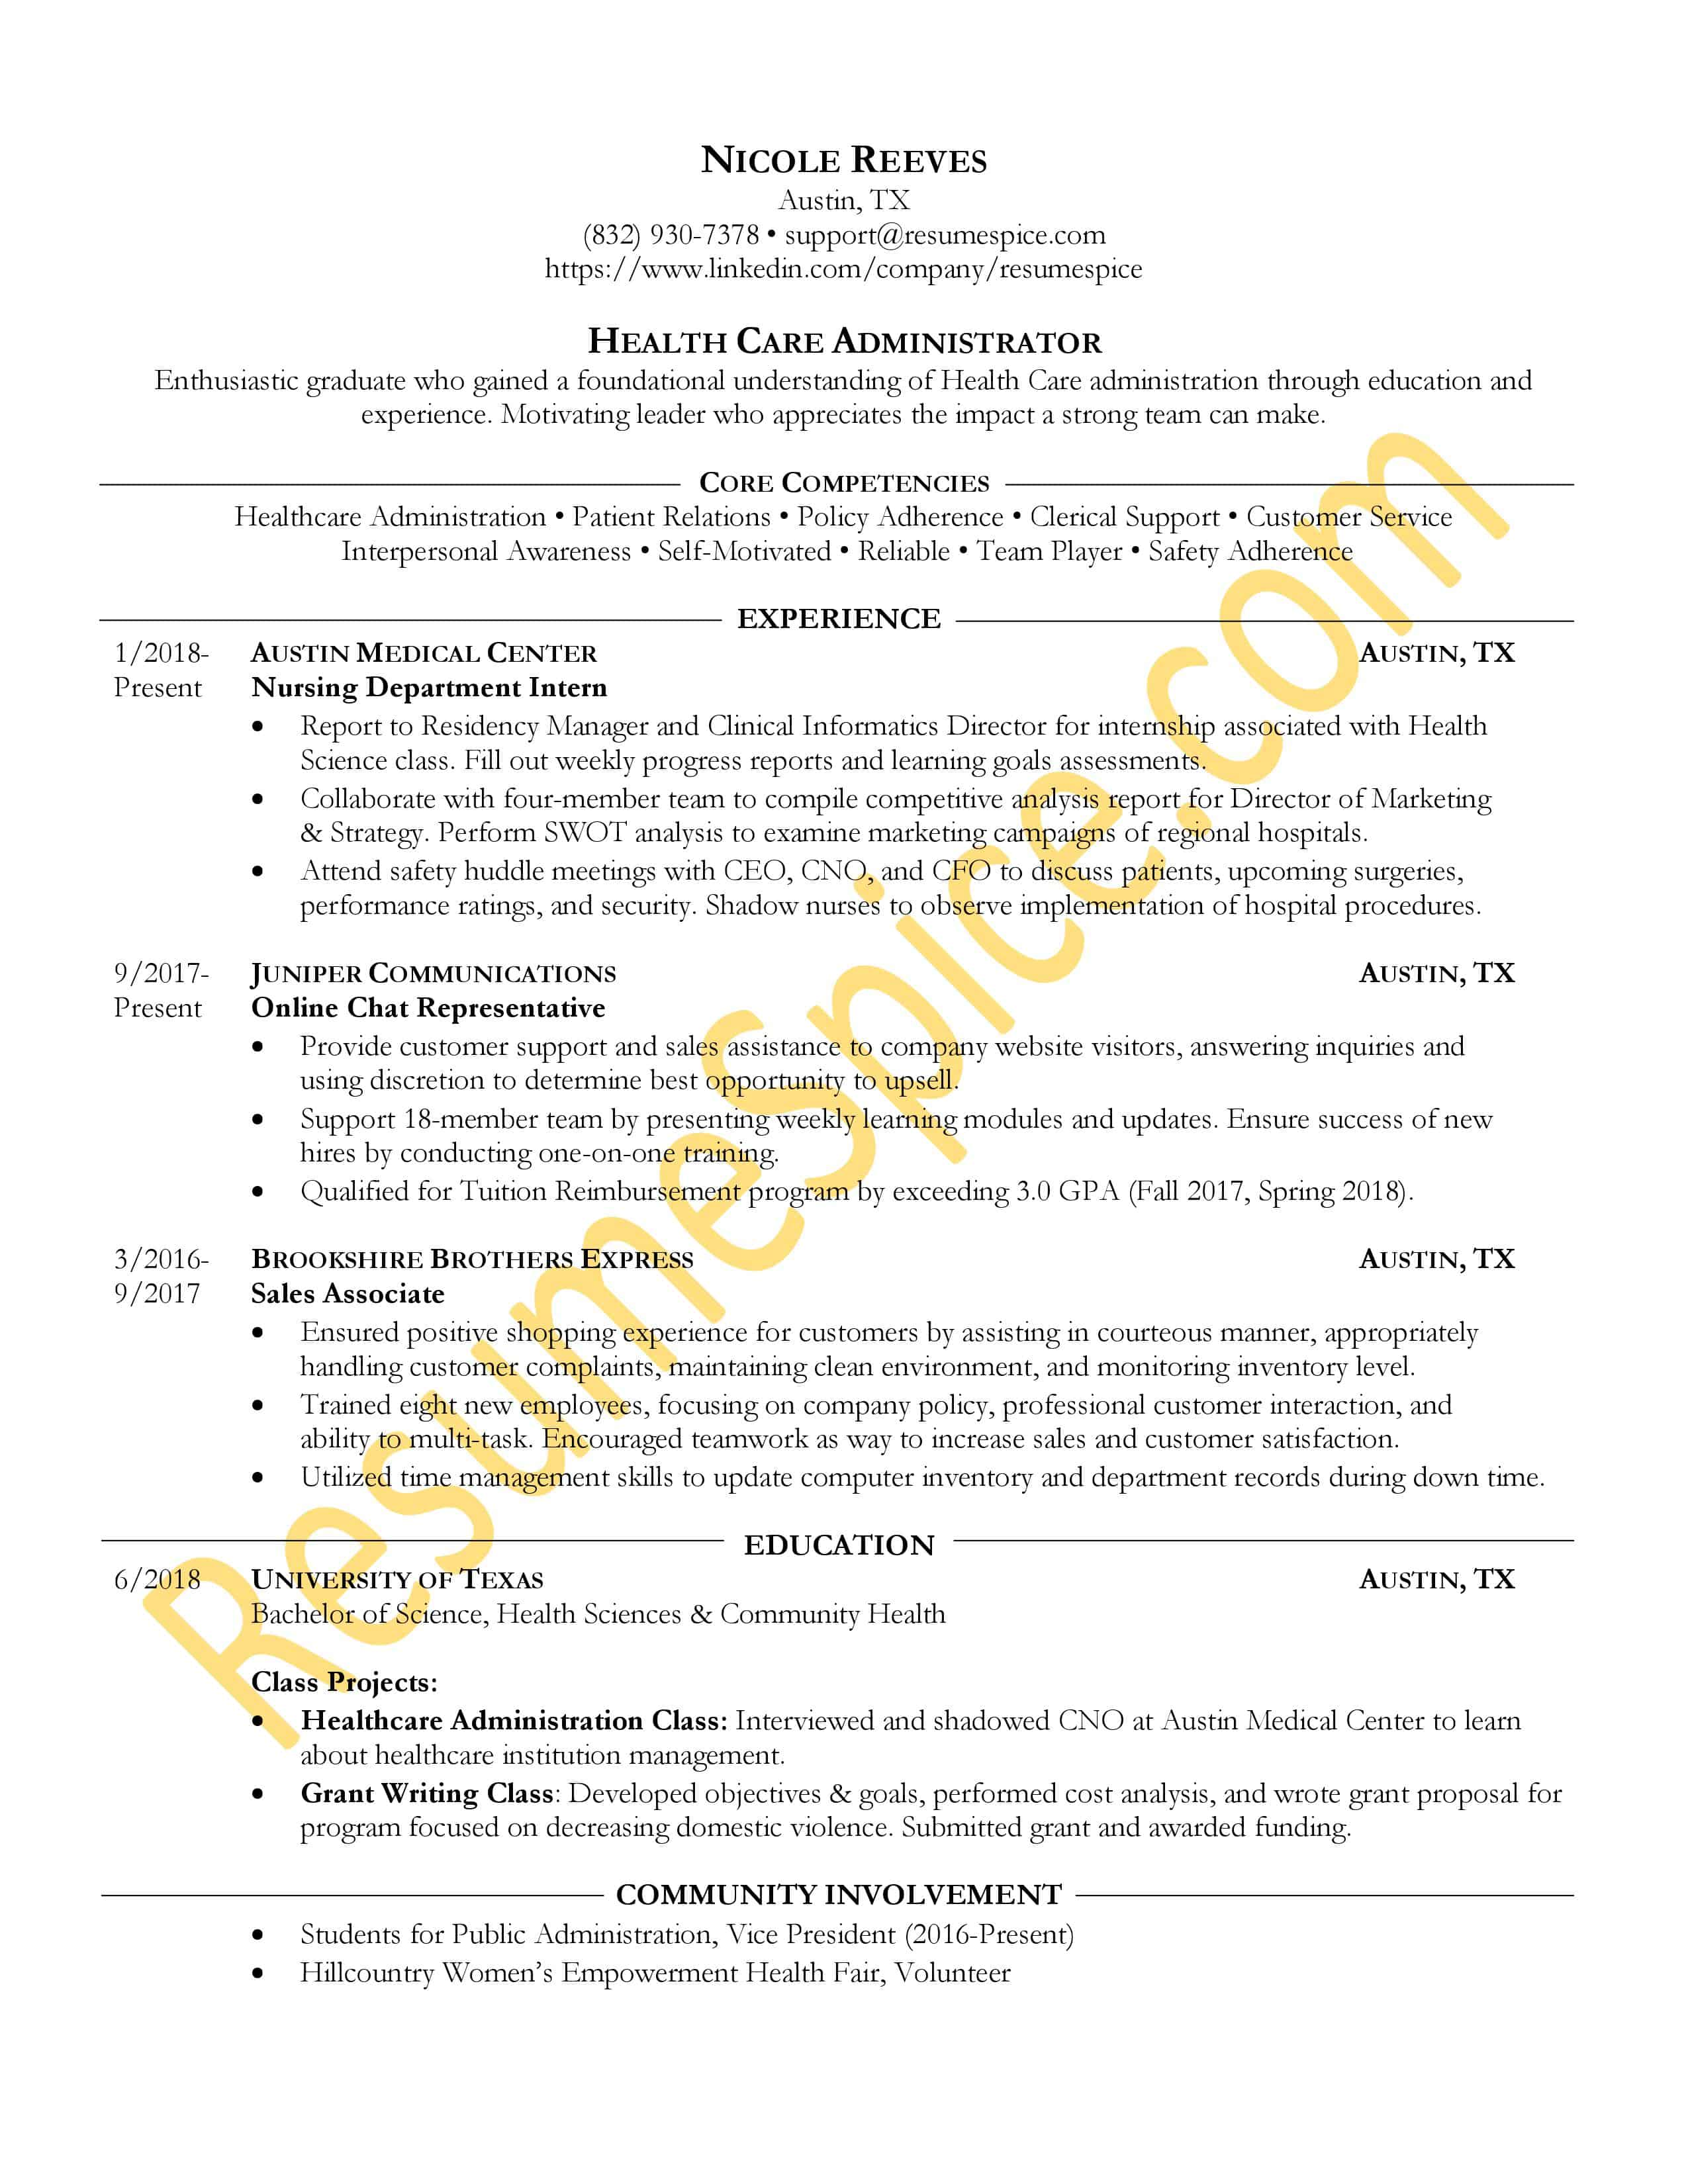 Example Of Resumes Best Resume Samples For Executives And Professionals Resumespice